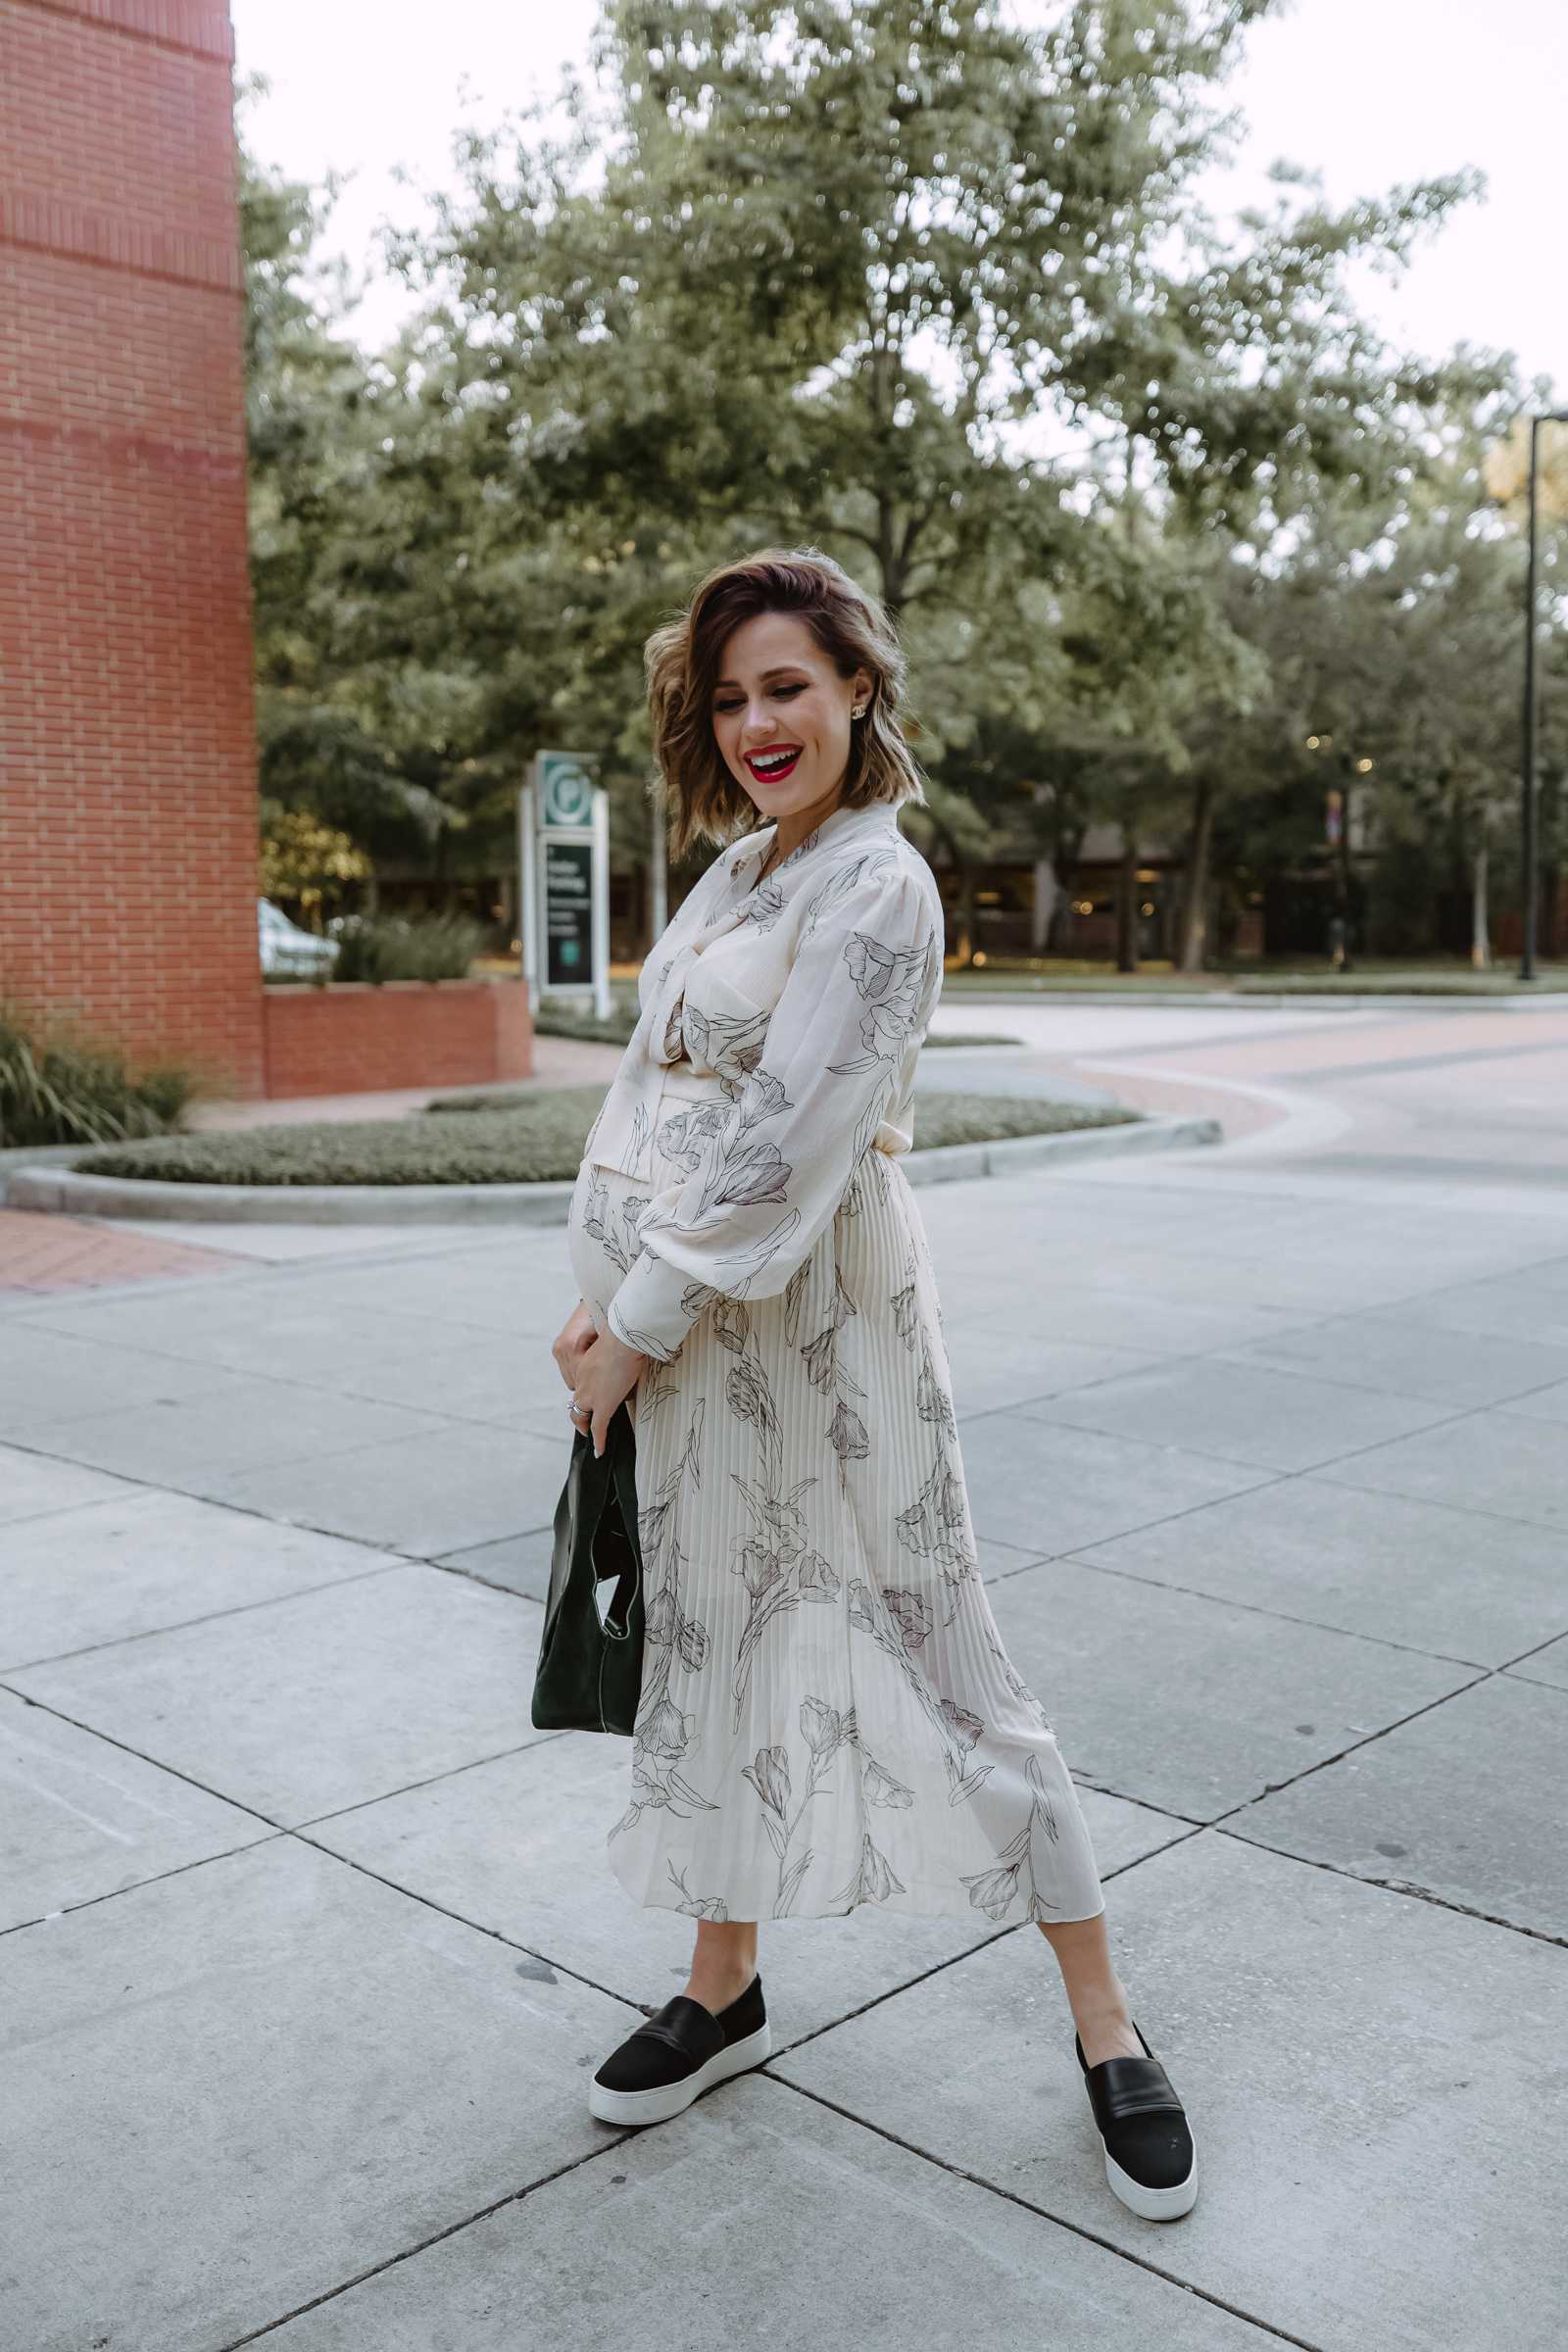 From work to play to weekend errands, Elly Brown shares 3 Ideas To Wear A Pleated Dress that's perfect for fall and under $35!